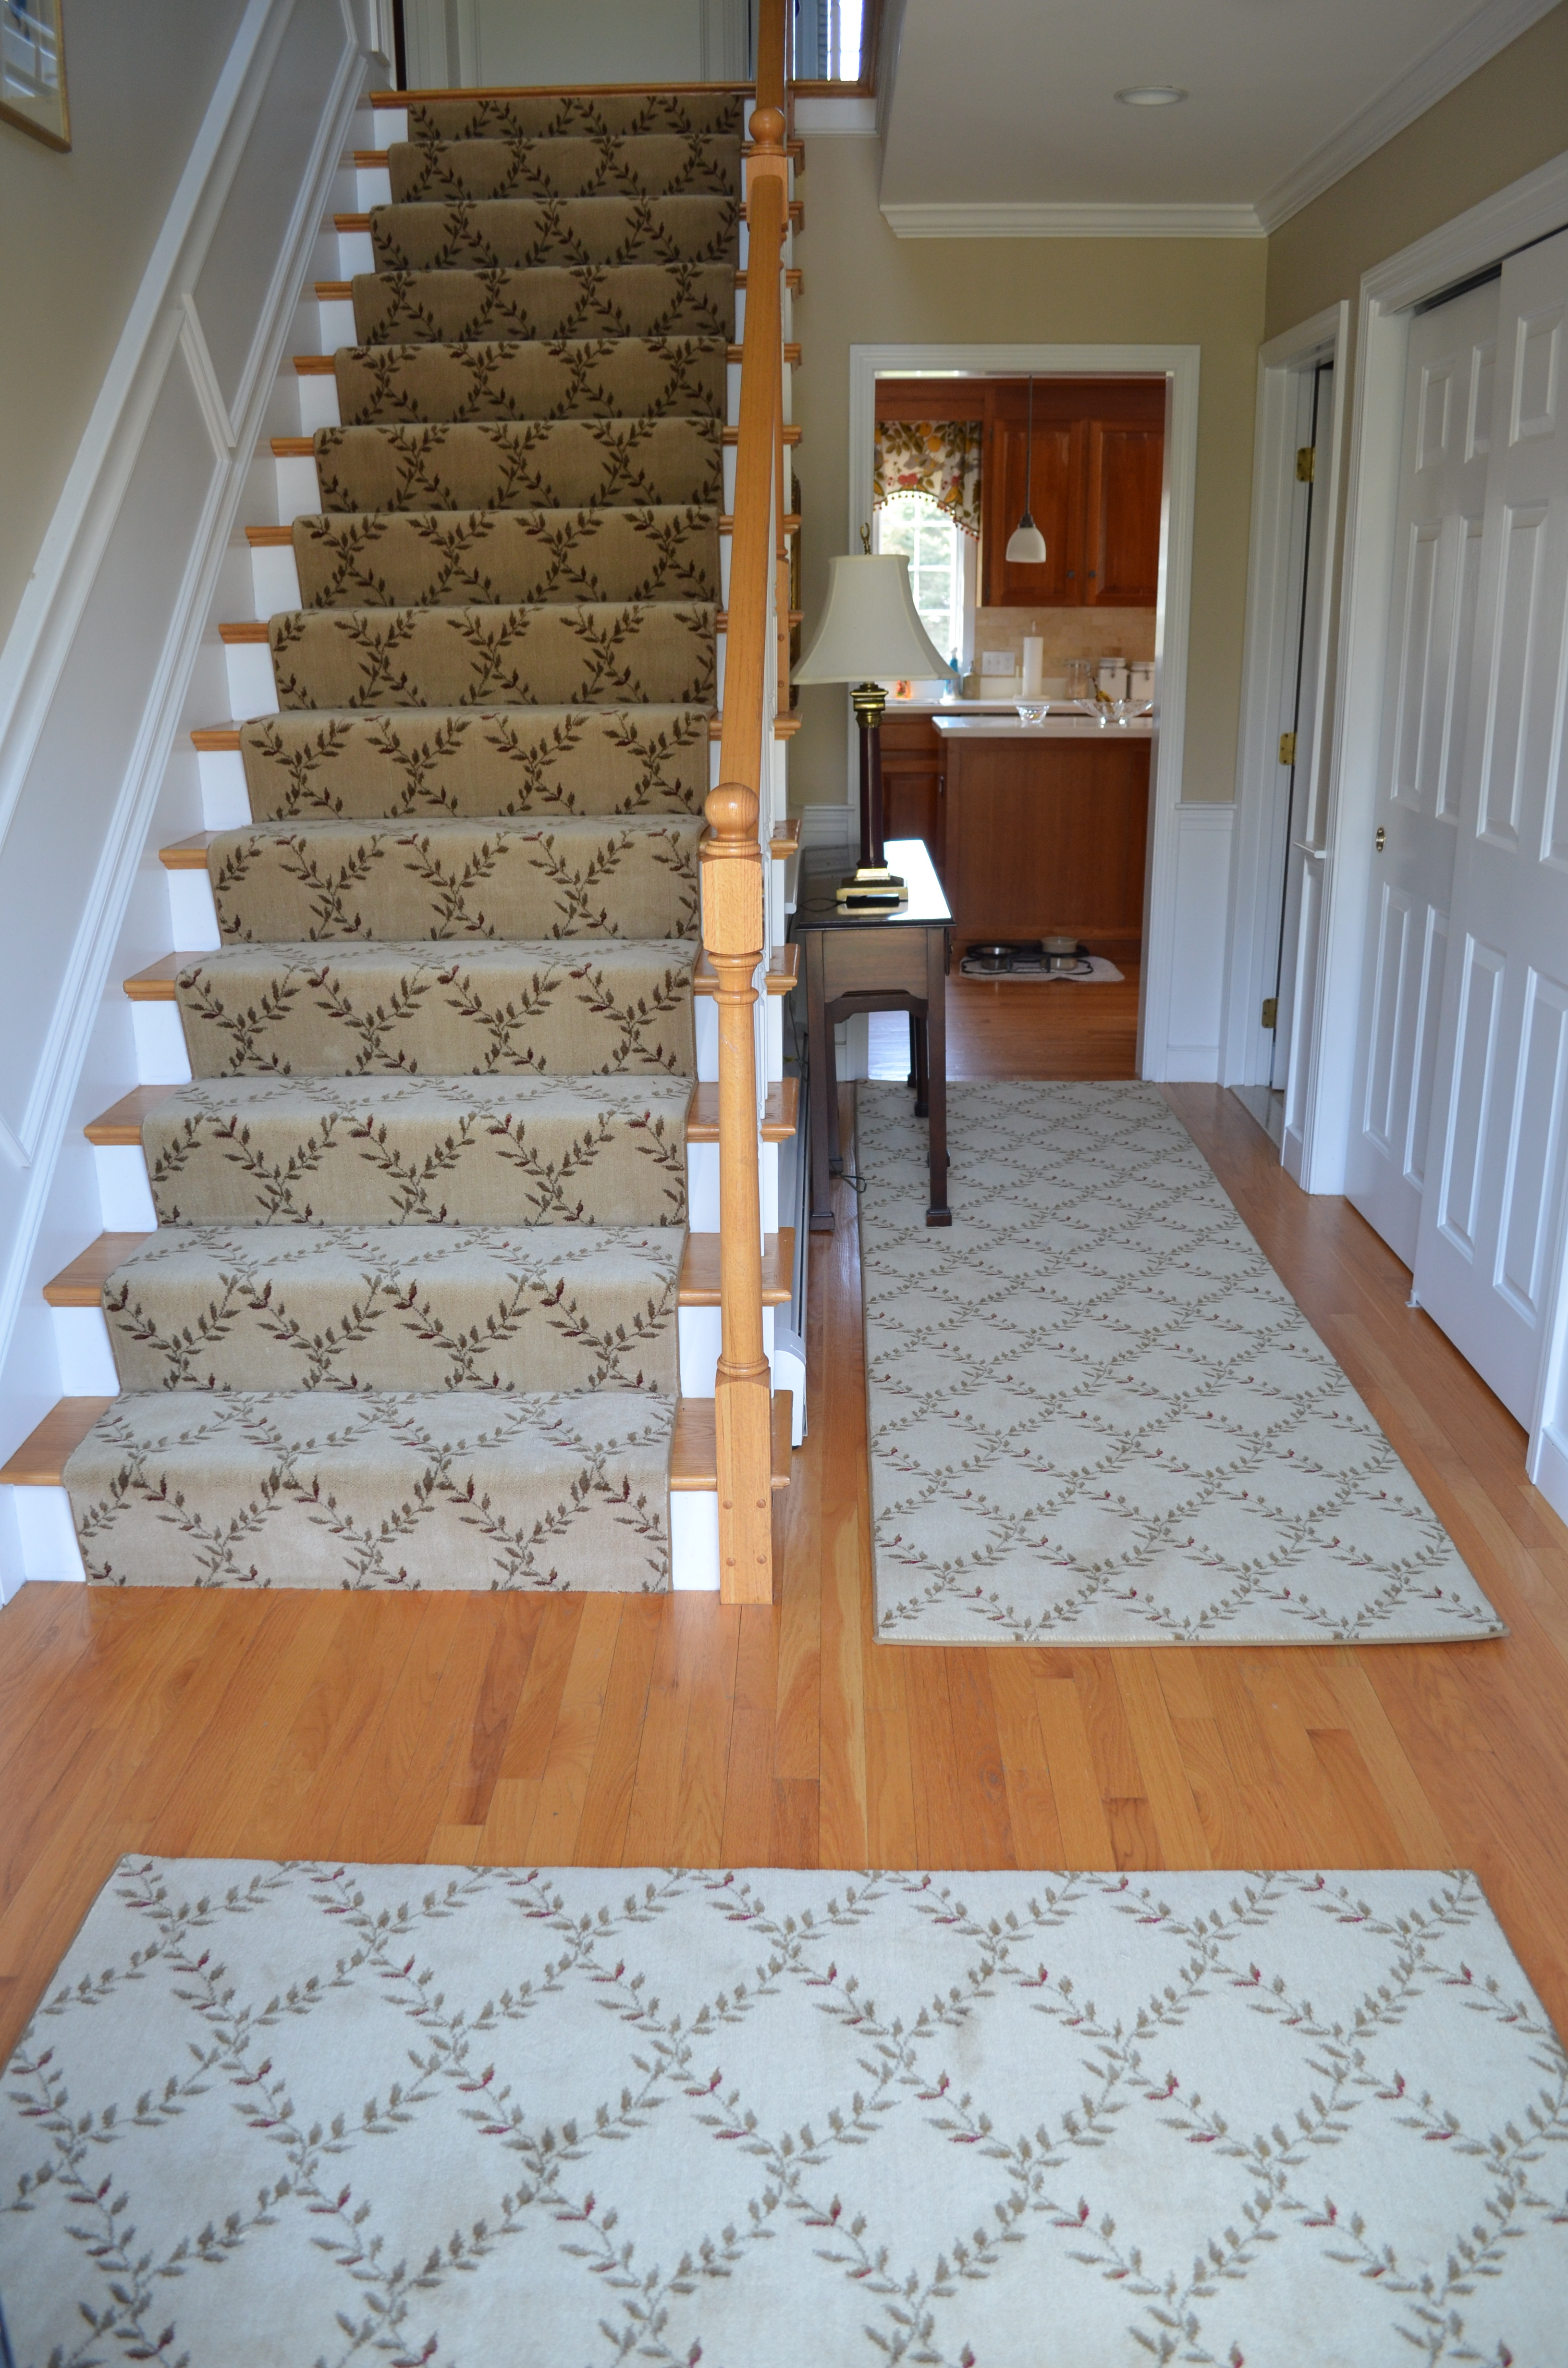 Carpet Runner For Stairs Pertaining To Modern Rug Runners For Hallways (View 7 of 20)